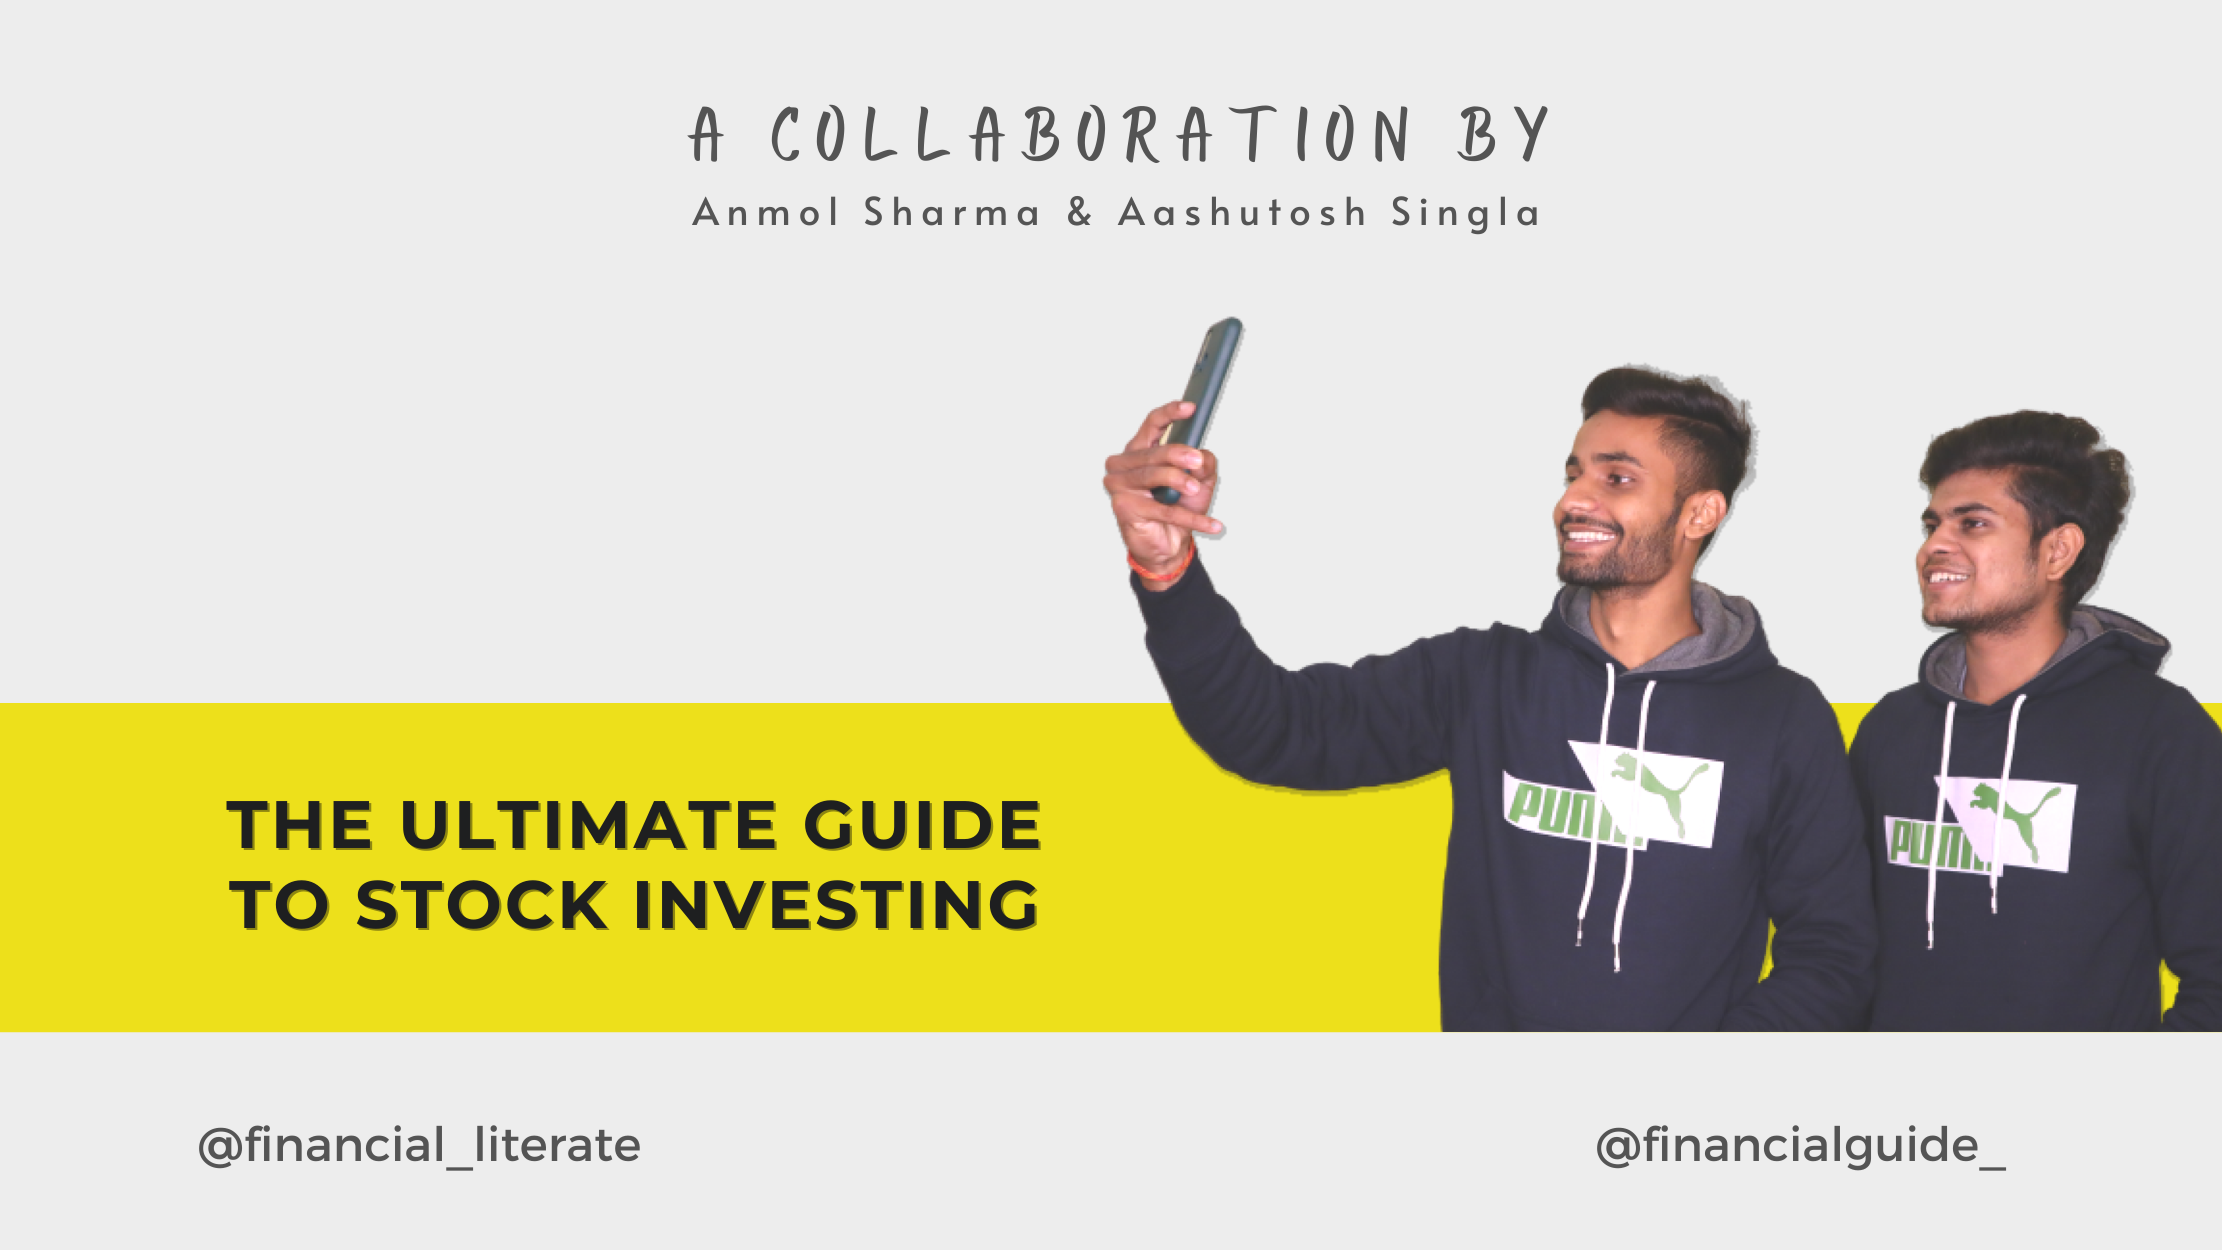 The Ultimate Guide to Stock Investing